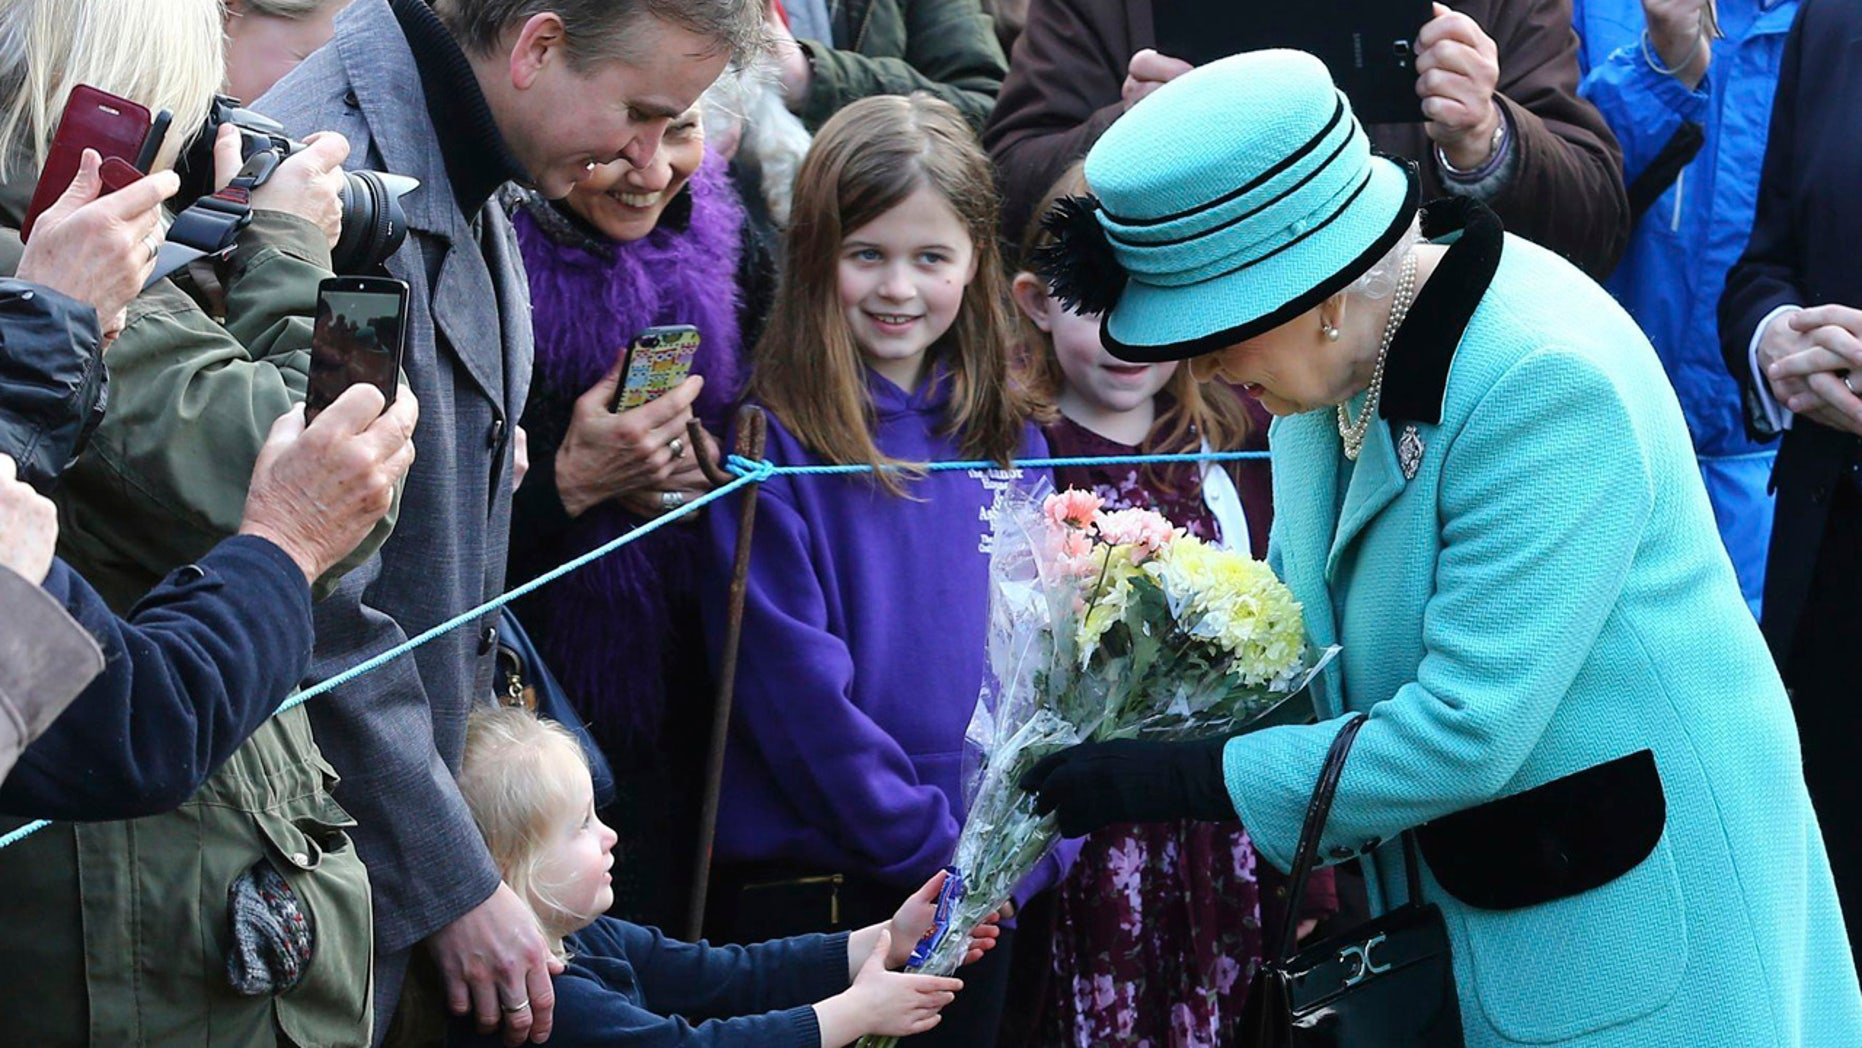 Britain's Queen Elizabeth II stops to receive flowers from 3-year old Jessica Atfield, after the queen and her husband Duke of Edinburgh, attended a church service at St Peter and St Paul church in West Newton, England, Sunday Feb. 5, 2017.